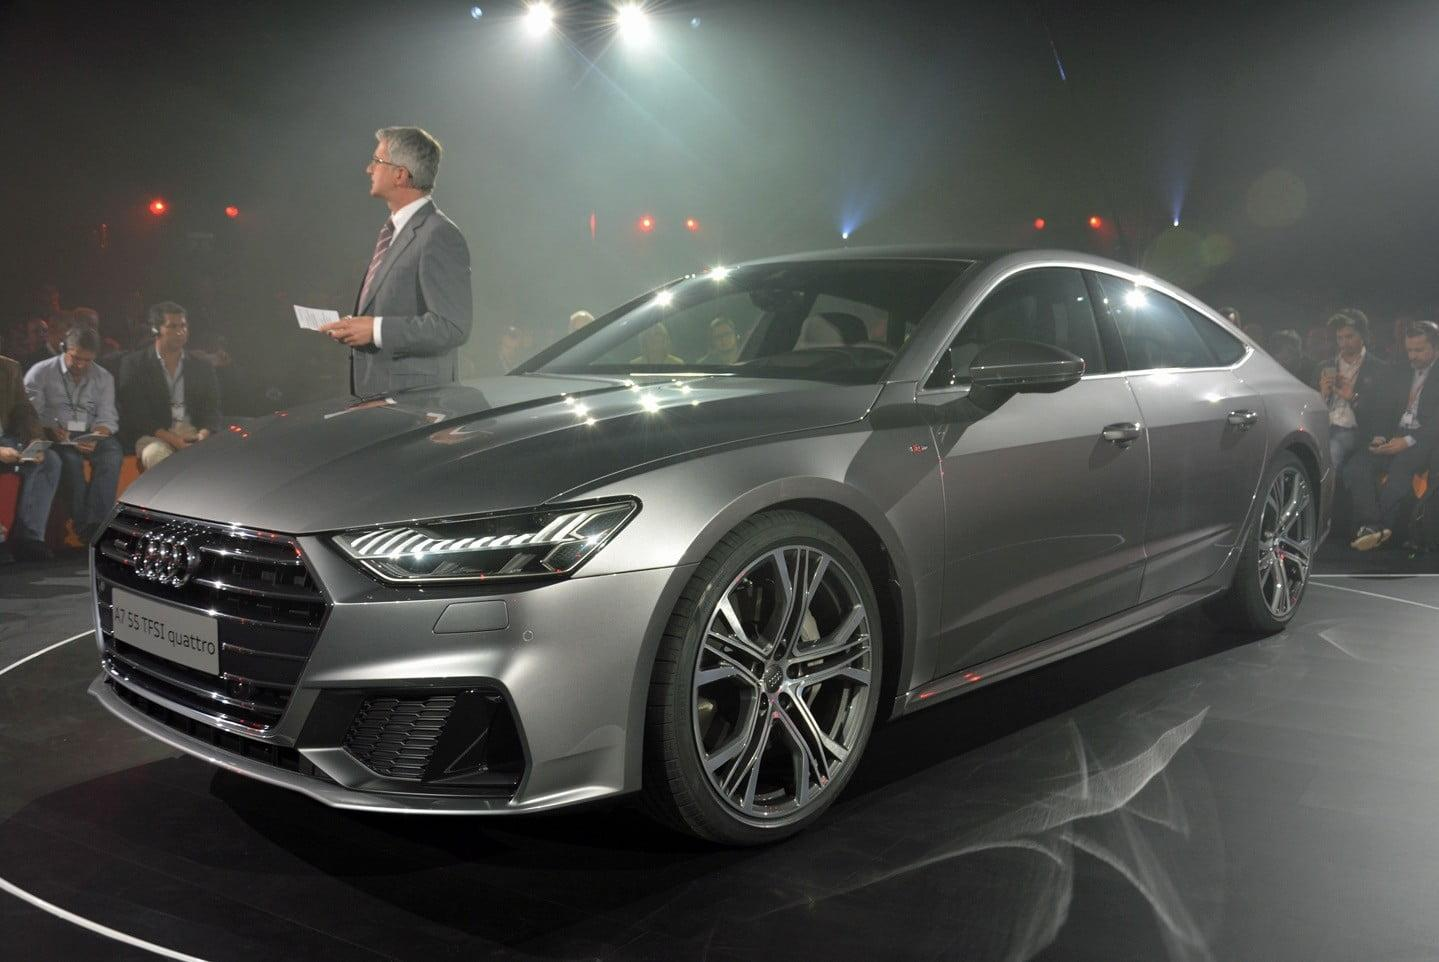 Audi Considers Subscription Service Plans Over The Air